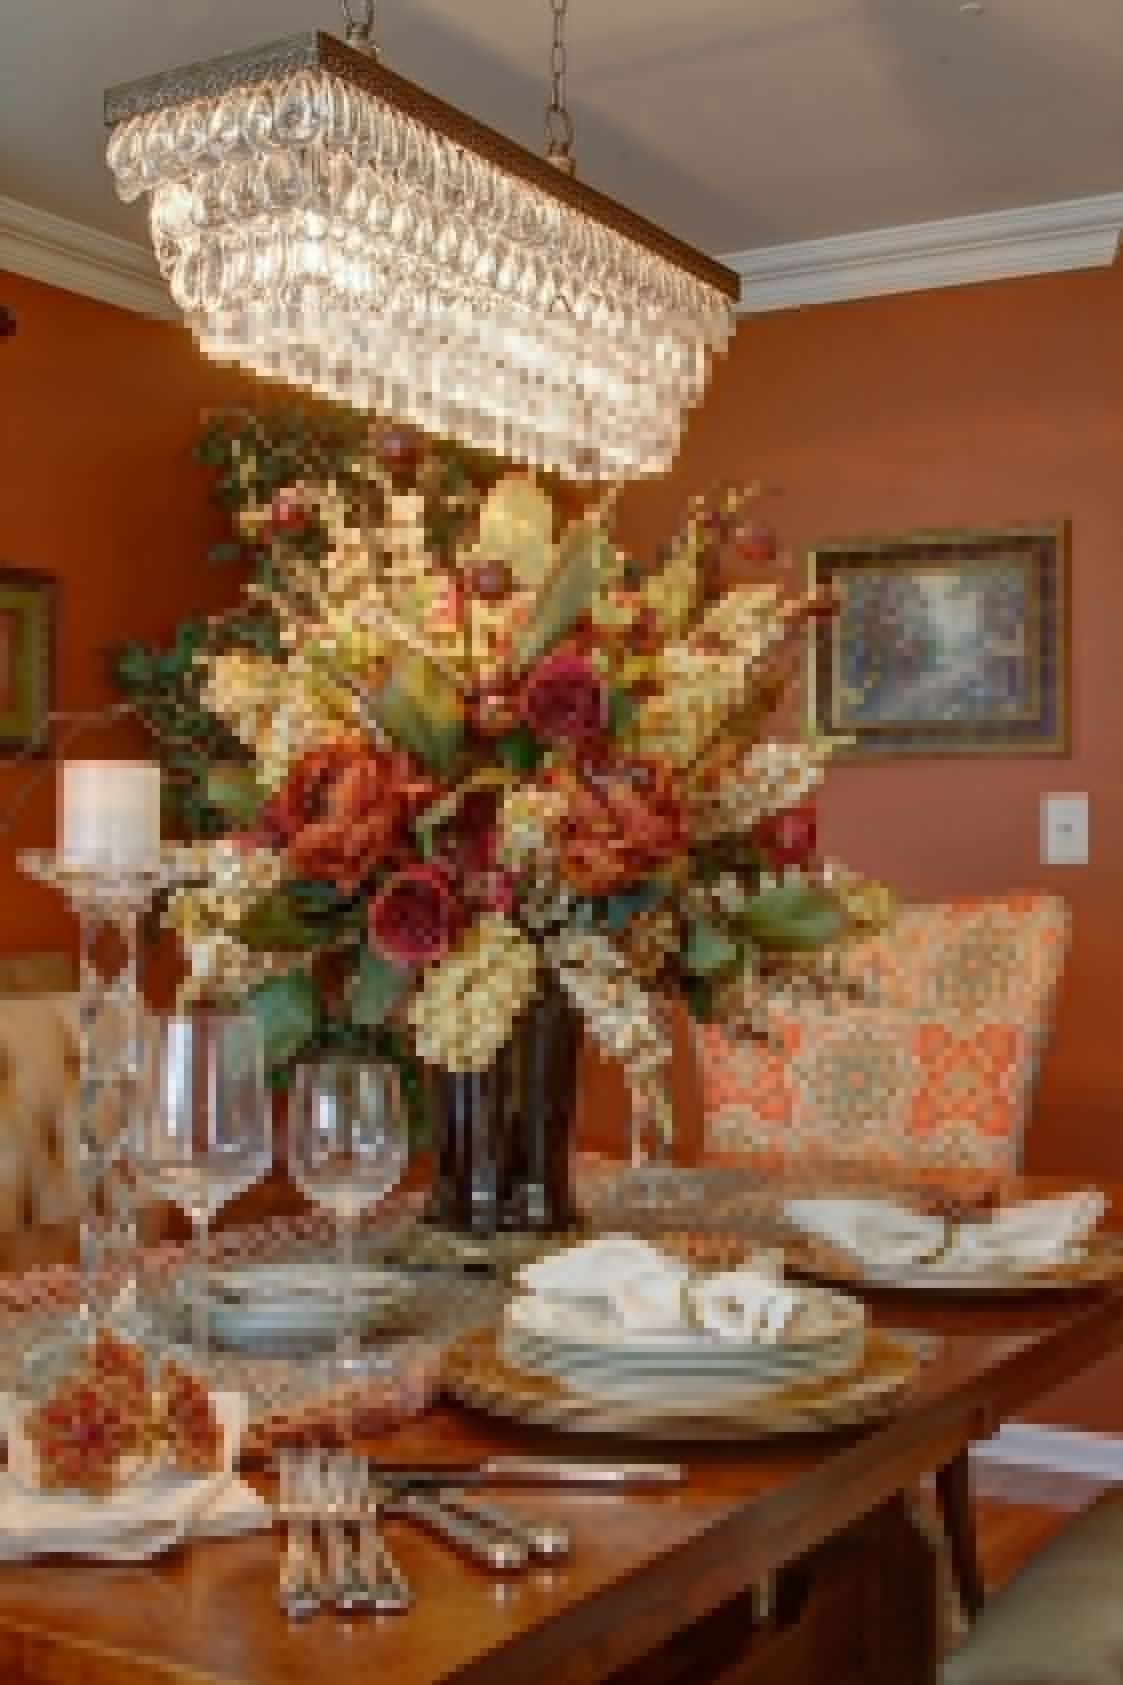 Dining Table Centerpiece Ideas Formal And Unique Table Centerpiece Table Floral Arrangements Dining Room Table